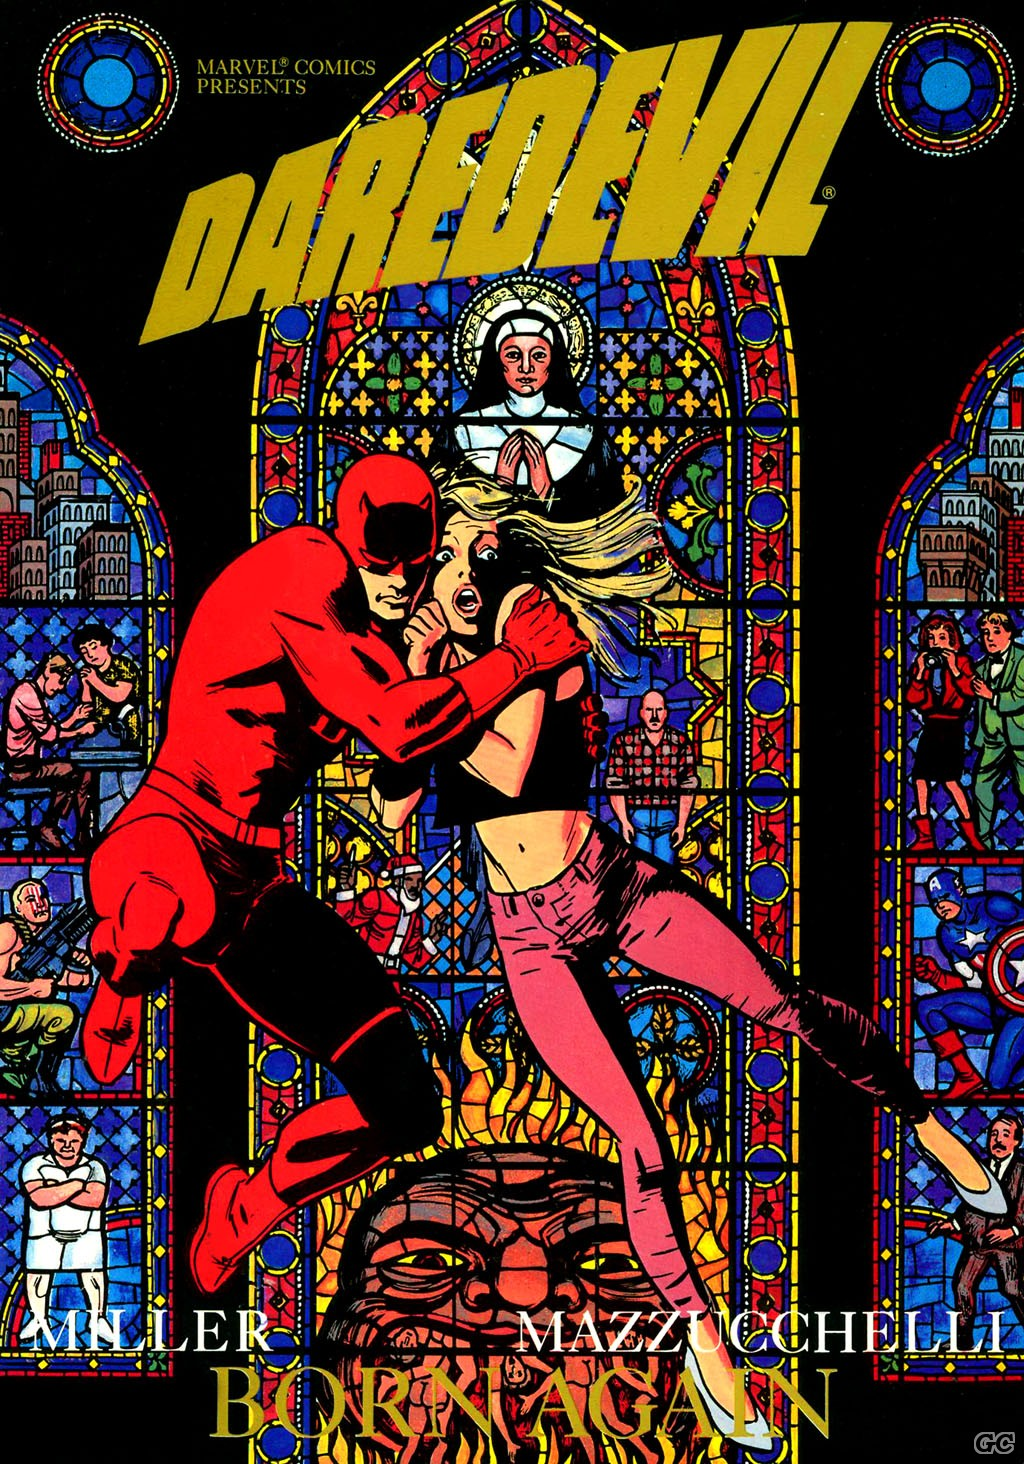 DAREDEVIL BORN AGAIN (FRANK MILLER-DAVID MAZZUCCHELLI)